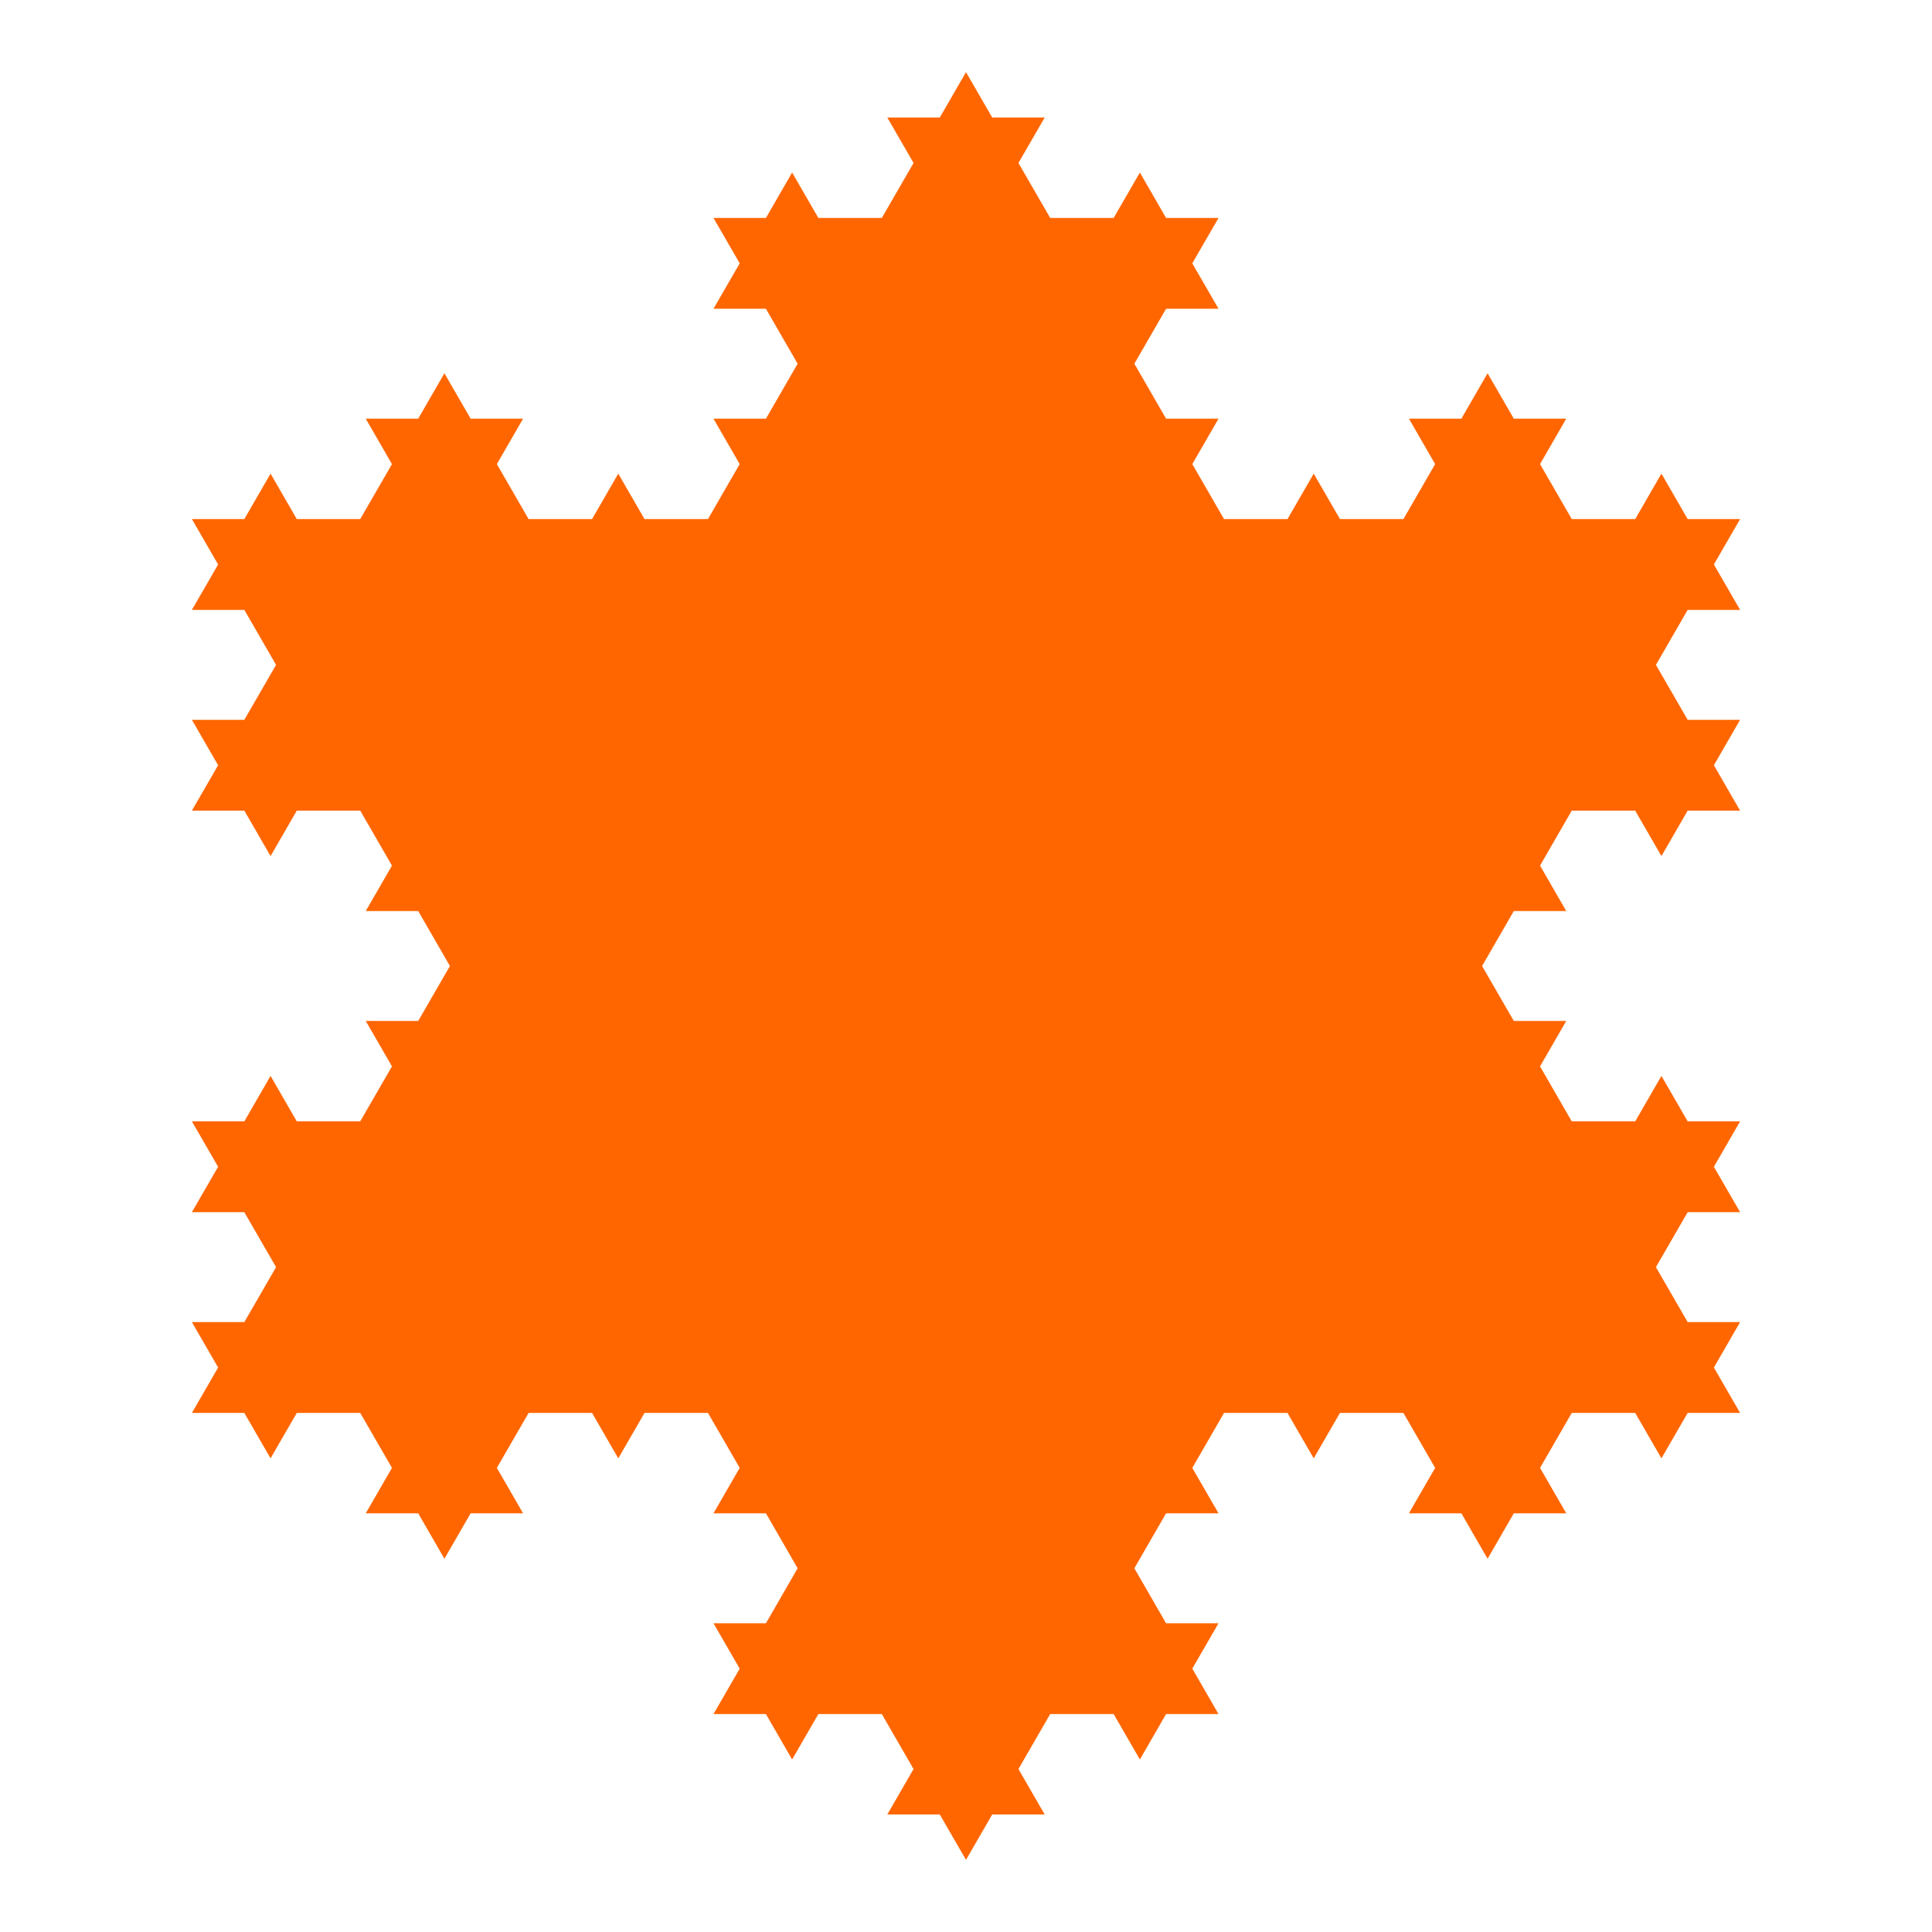 Orange snowflake clipart vector black and white library Clipart - snowflake curve vector black and white library